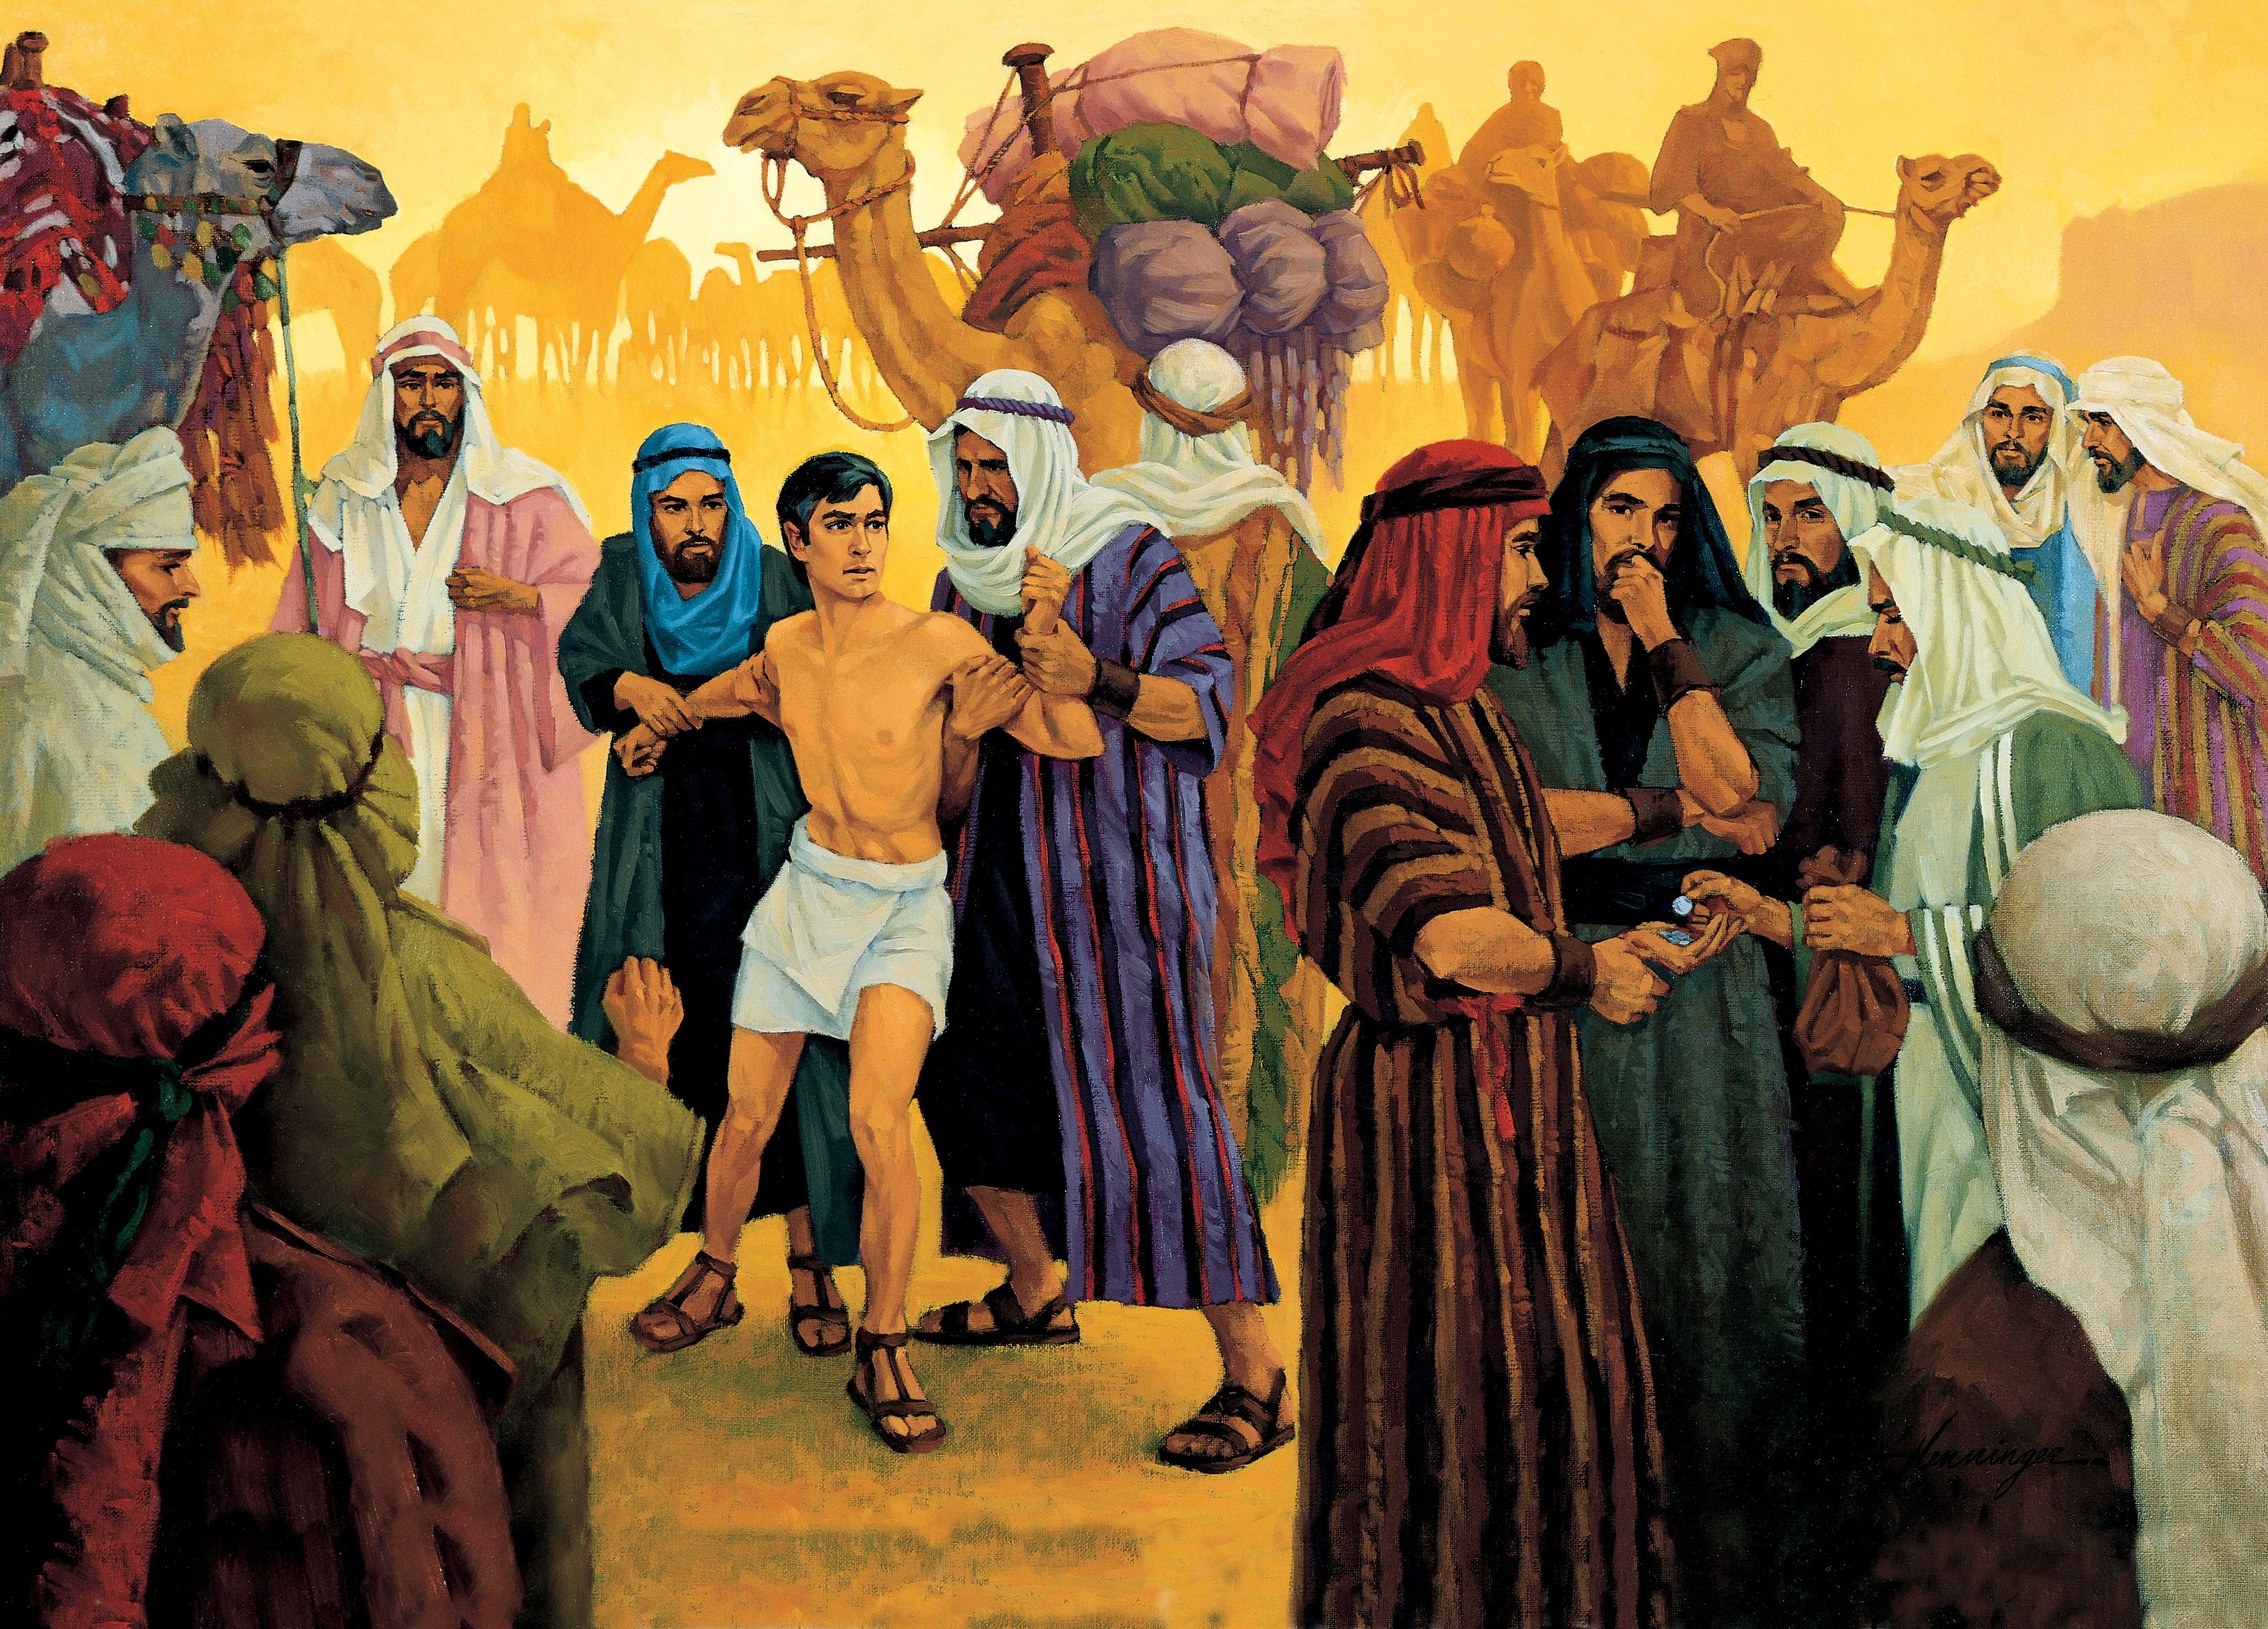 Joseph Is Sold by His Brothers, by Ted Henninger (62525); GAK 109; Primary manual 1-57; Primary manual 6-16; Genesis 37:28